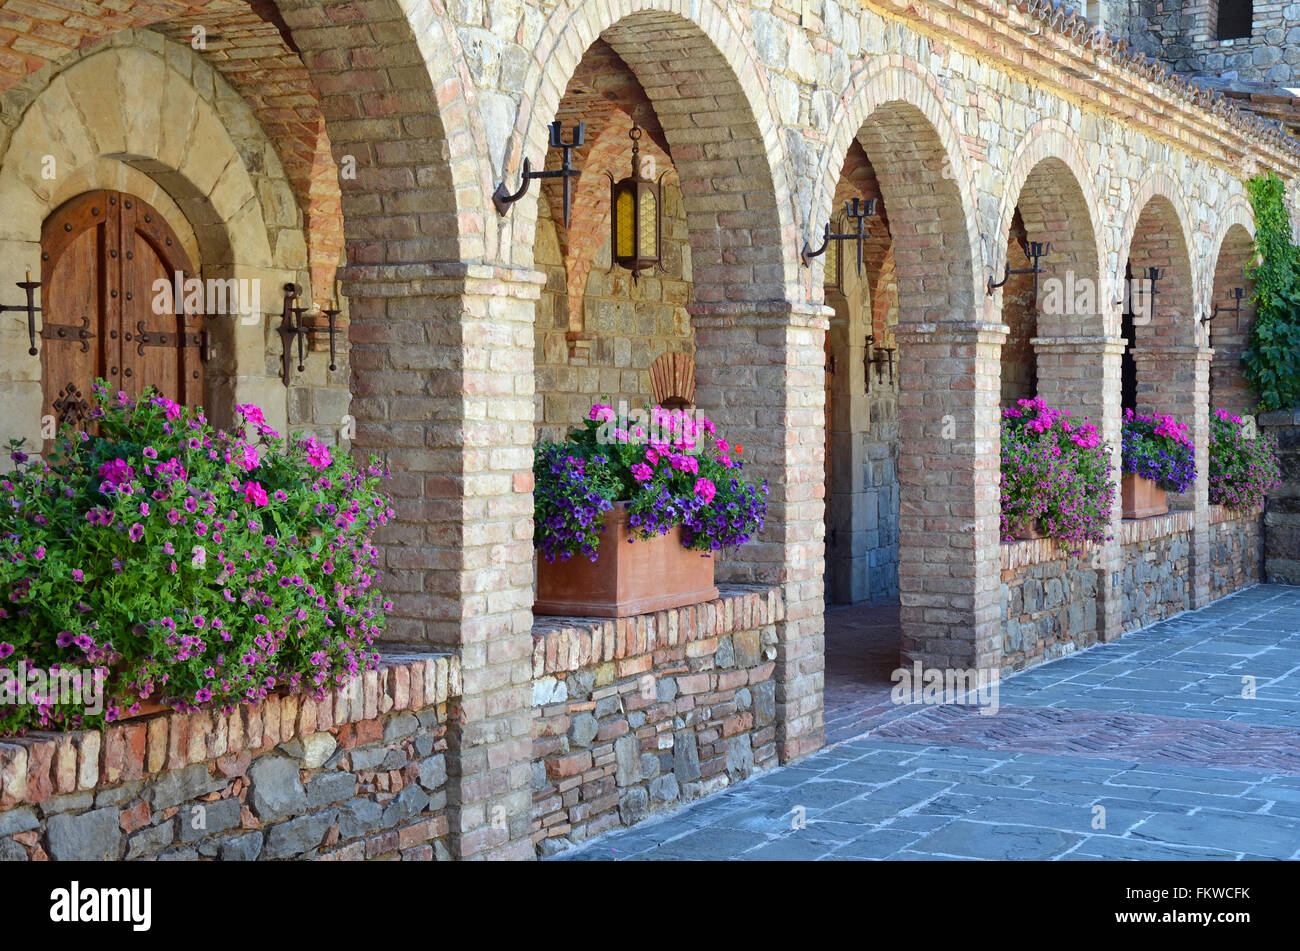 Medieval style brick archway and courtyard - Stock Image